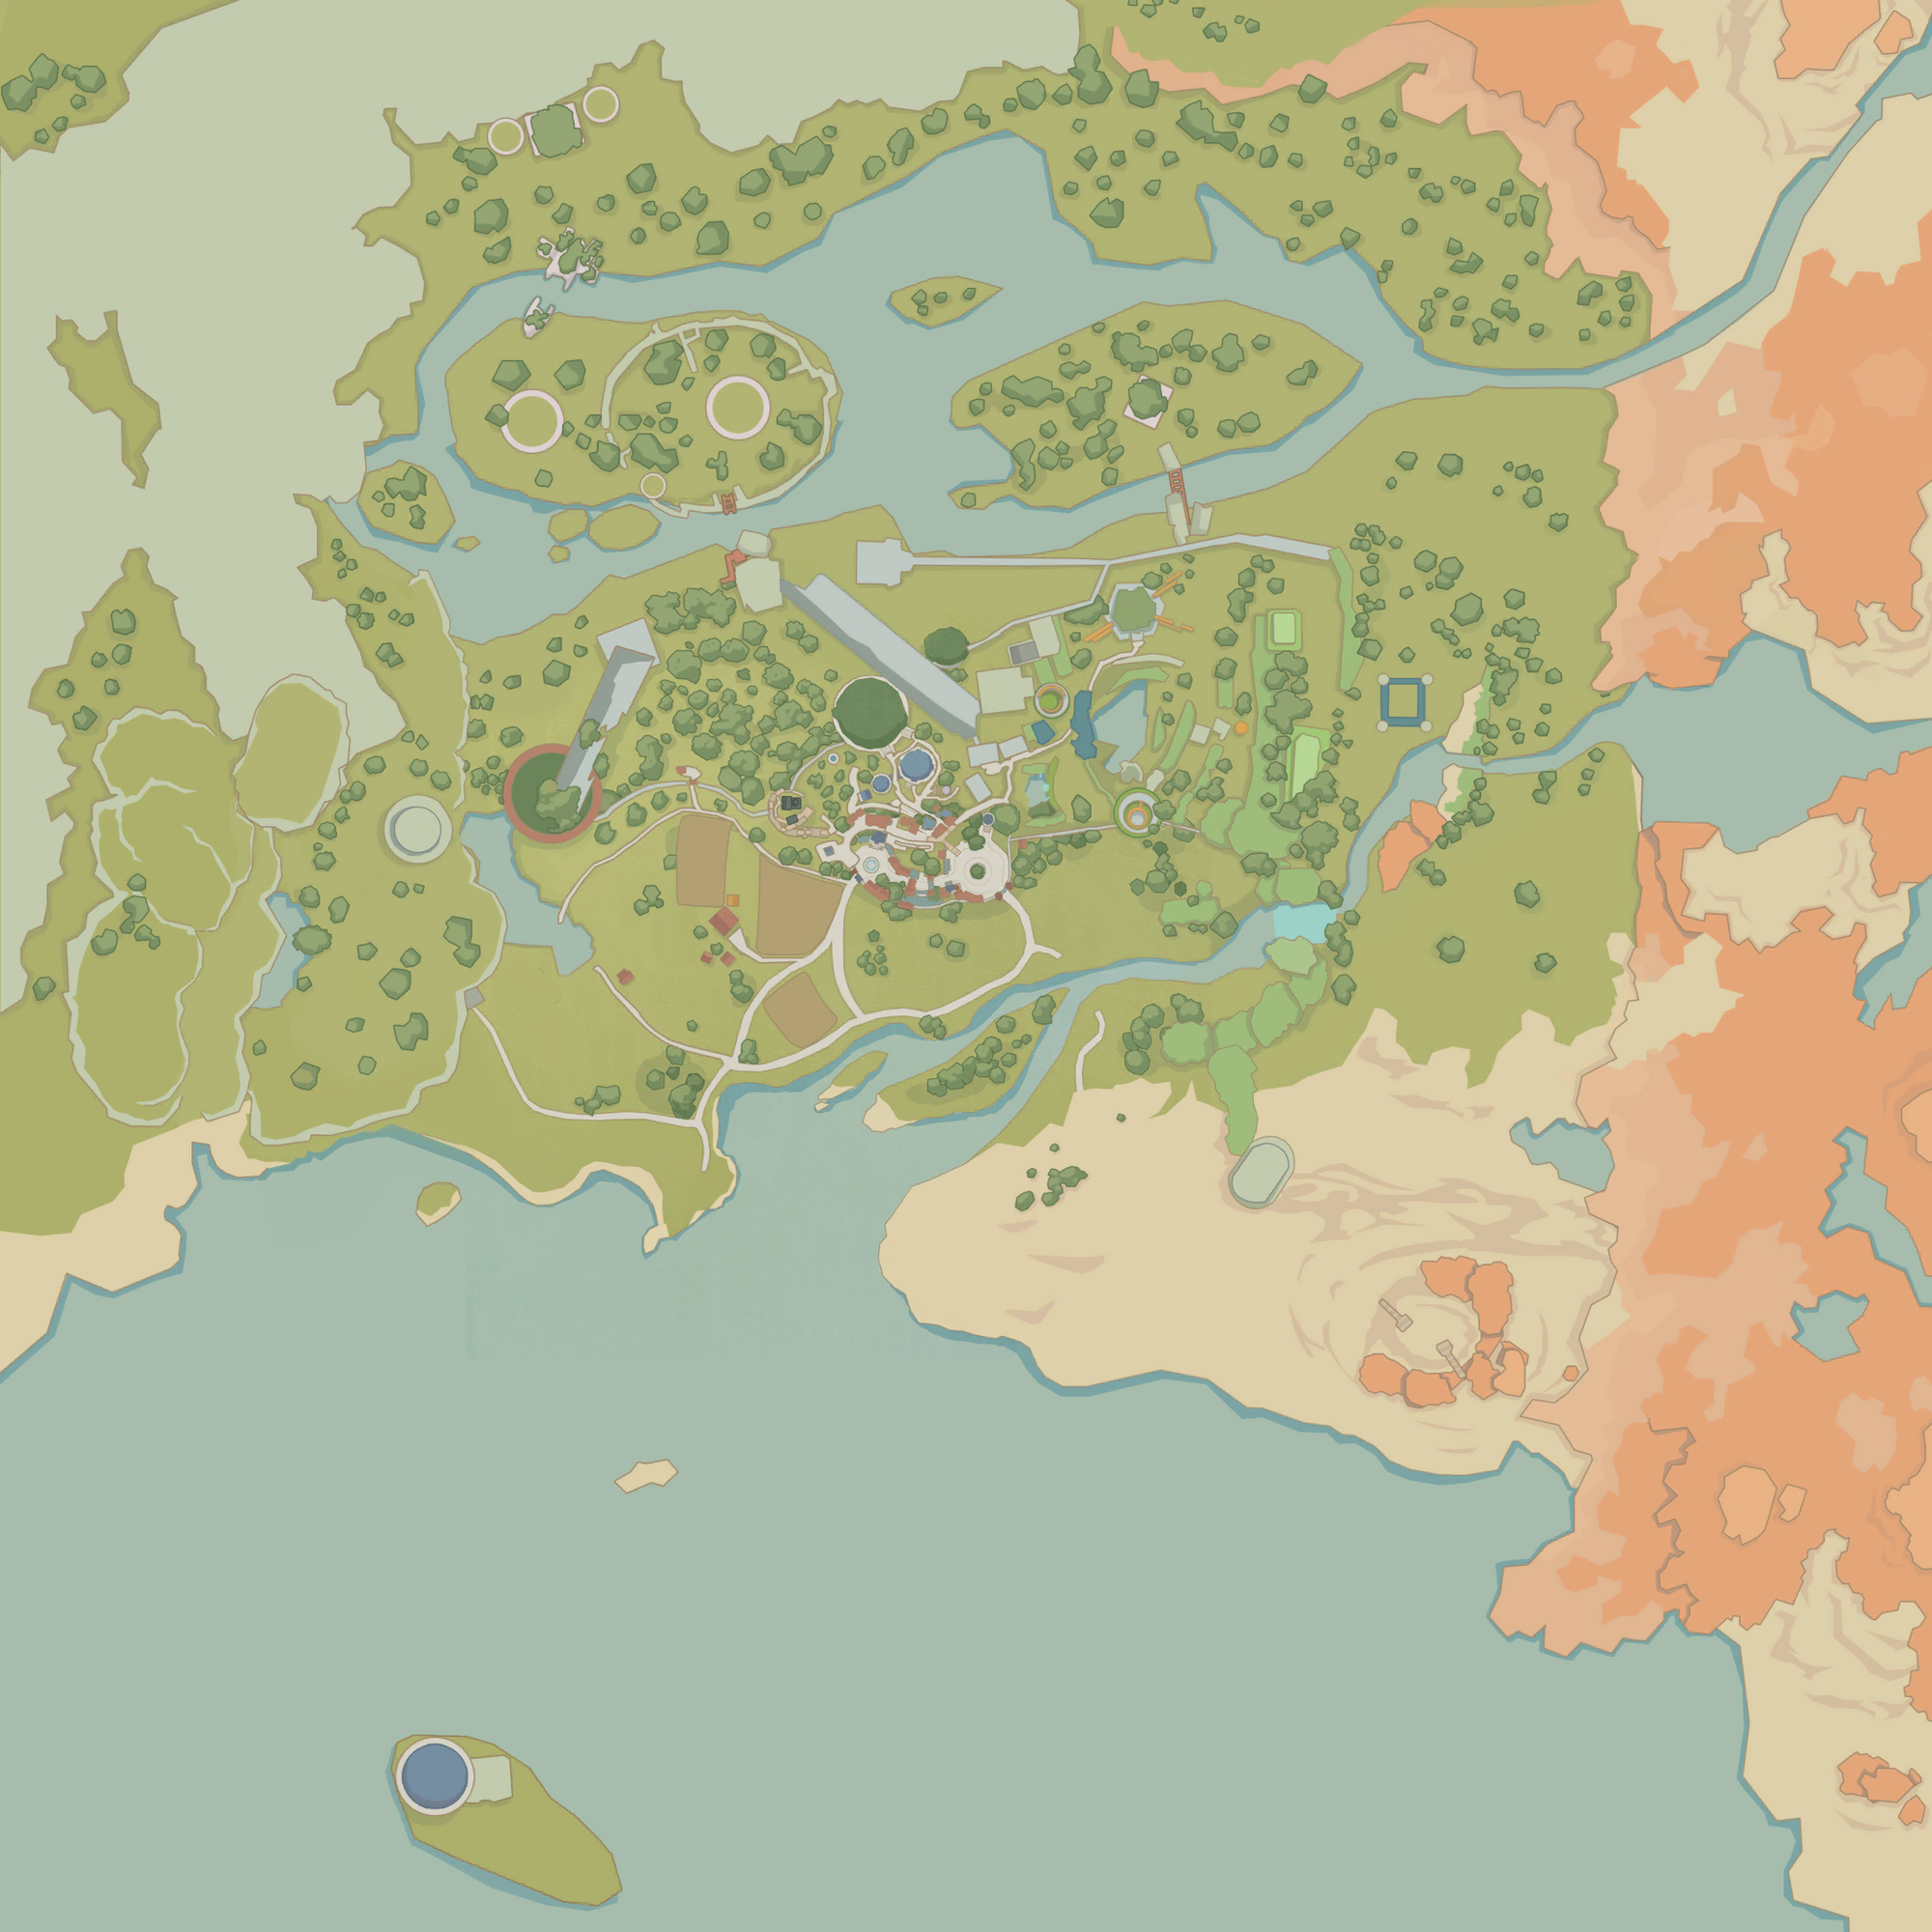 Map | My Time at Portia Wiki | FANDOM powered by Wikia Map My on co map, tv map, can map, first map, get map, oh map, gw map, heart map, future earth changes map, wo map, personal systems map, find map, would map, ai map, art that is a map, it's map, nz map, india map, no map, bing map,